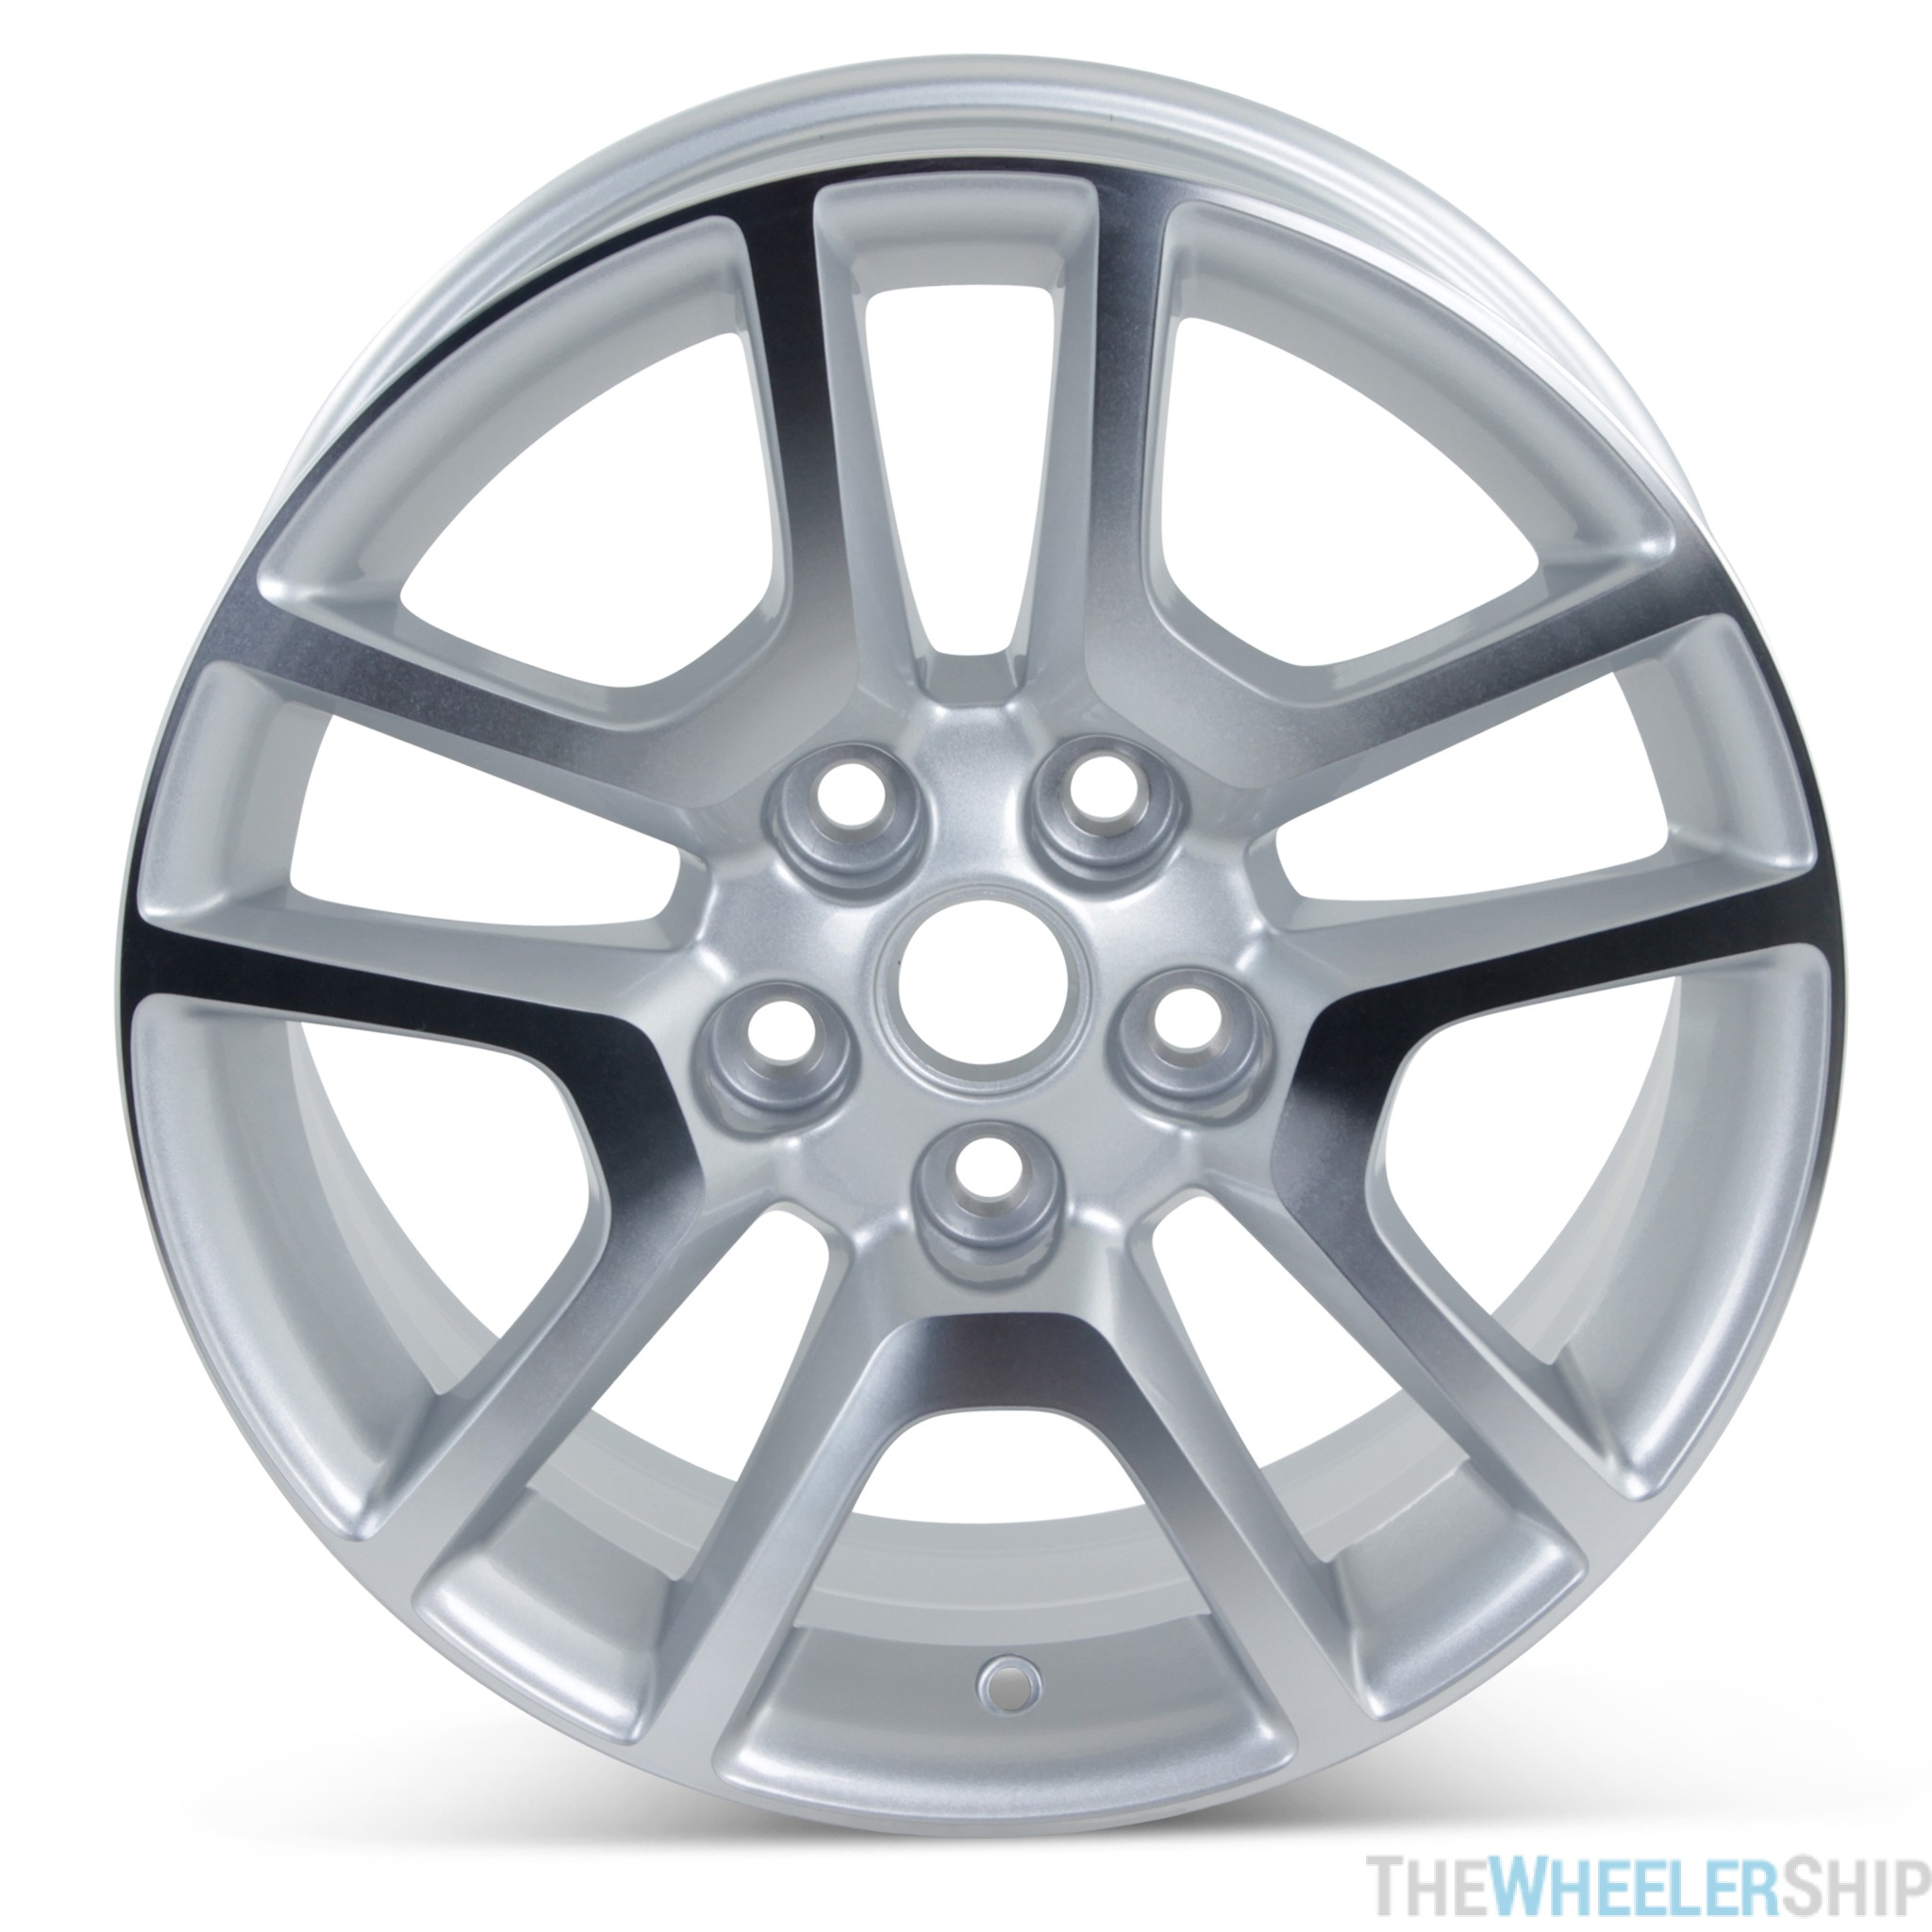 Chevrolet Malibu 2014 For Sale: 17 Inch Chevy Malibu Wheels For Sale